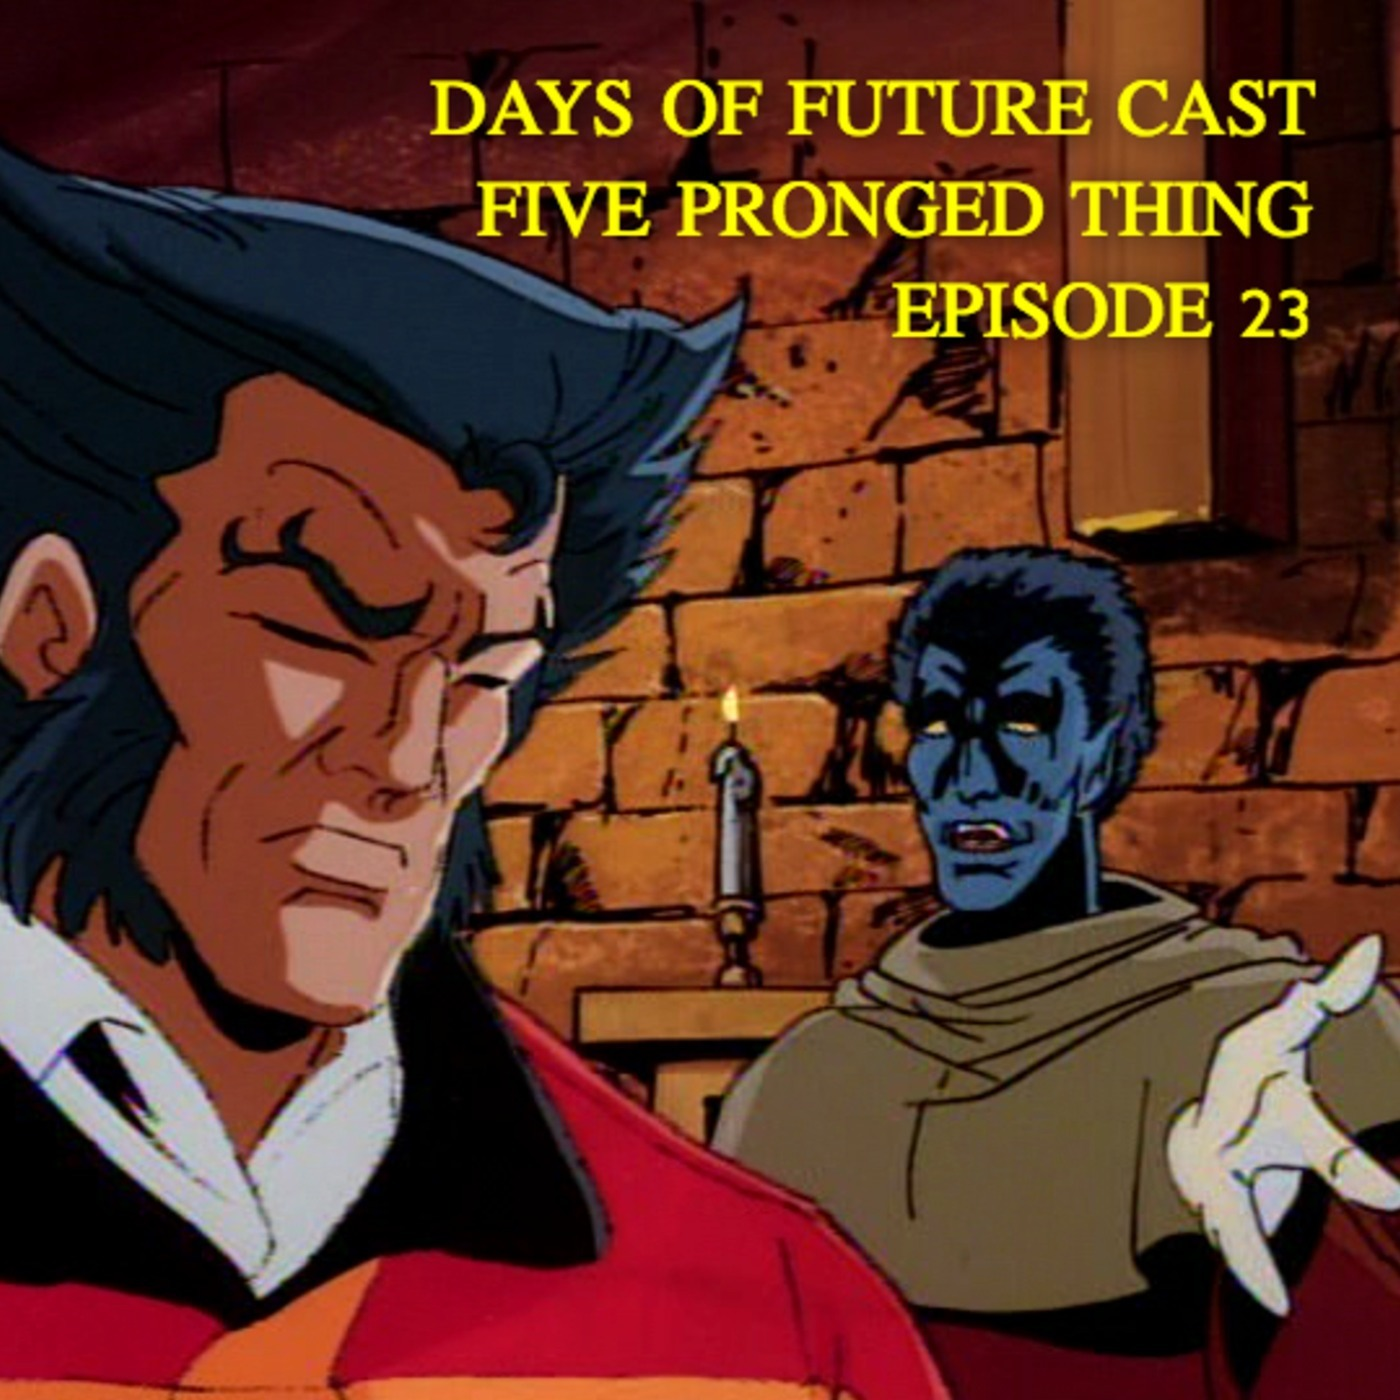 Days Of Future Cast Episode 23 Five Pronged Thing